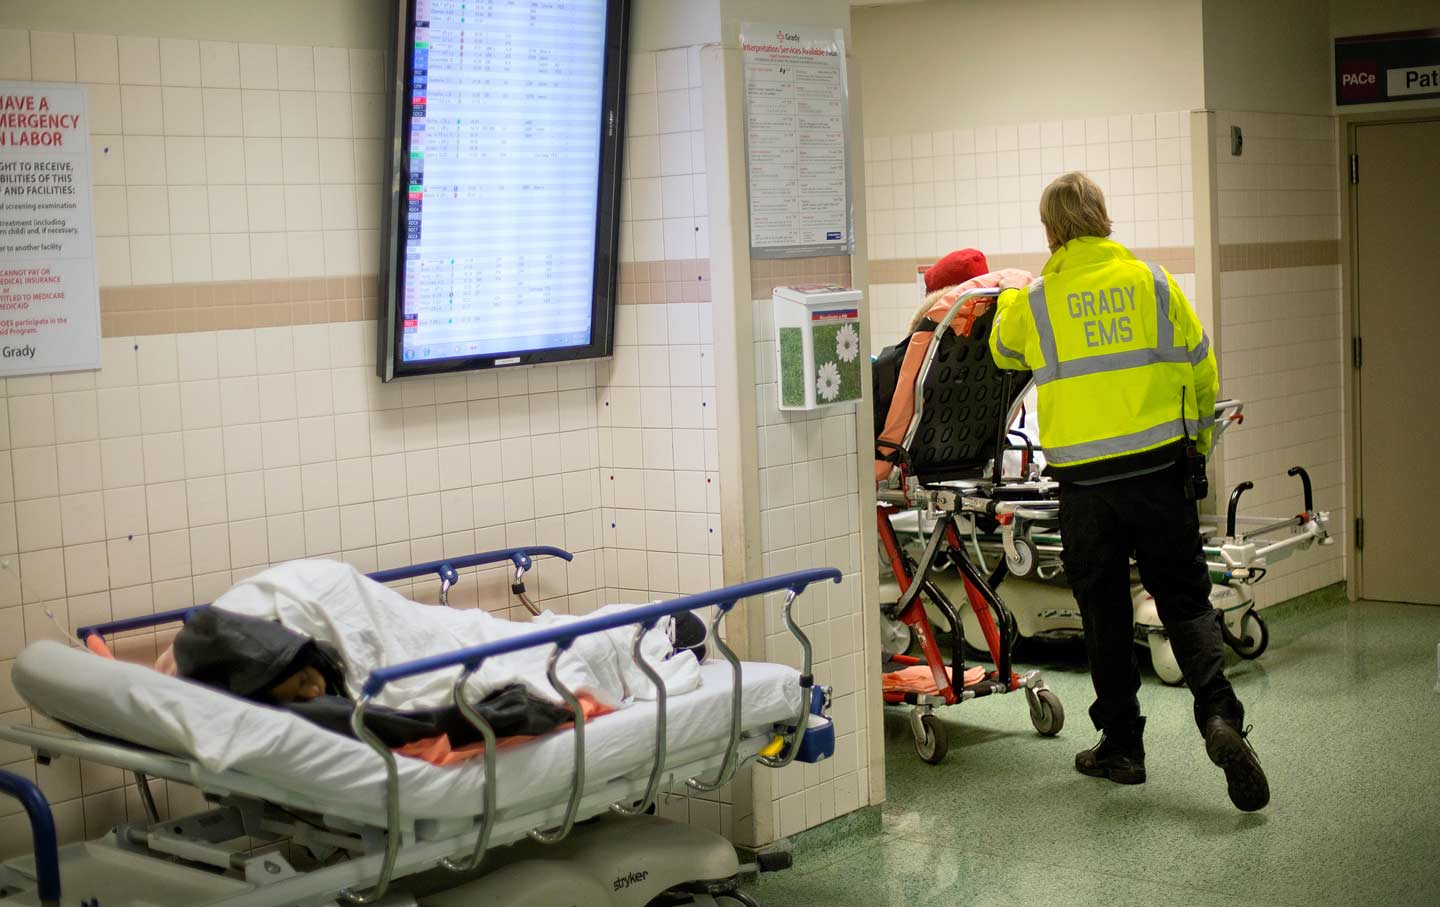 cancer deaths have spiked during the great recession the nation an ems worker wheels a patient through the emergency department at grady memorial hospital in atlanta ap photo david goldman